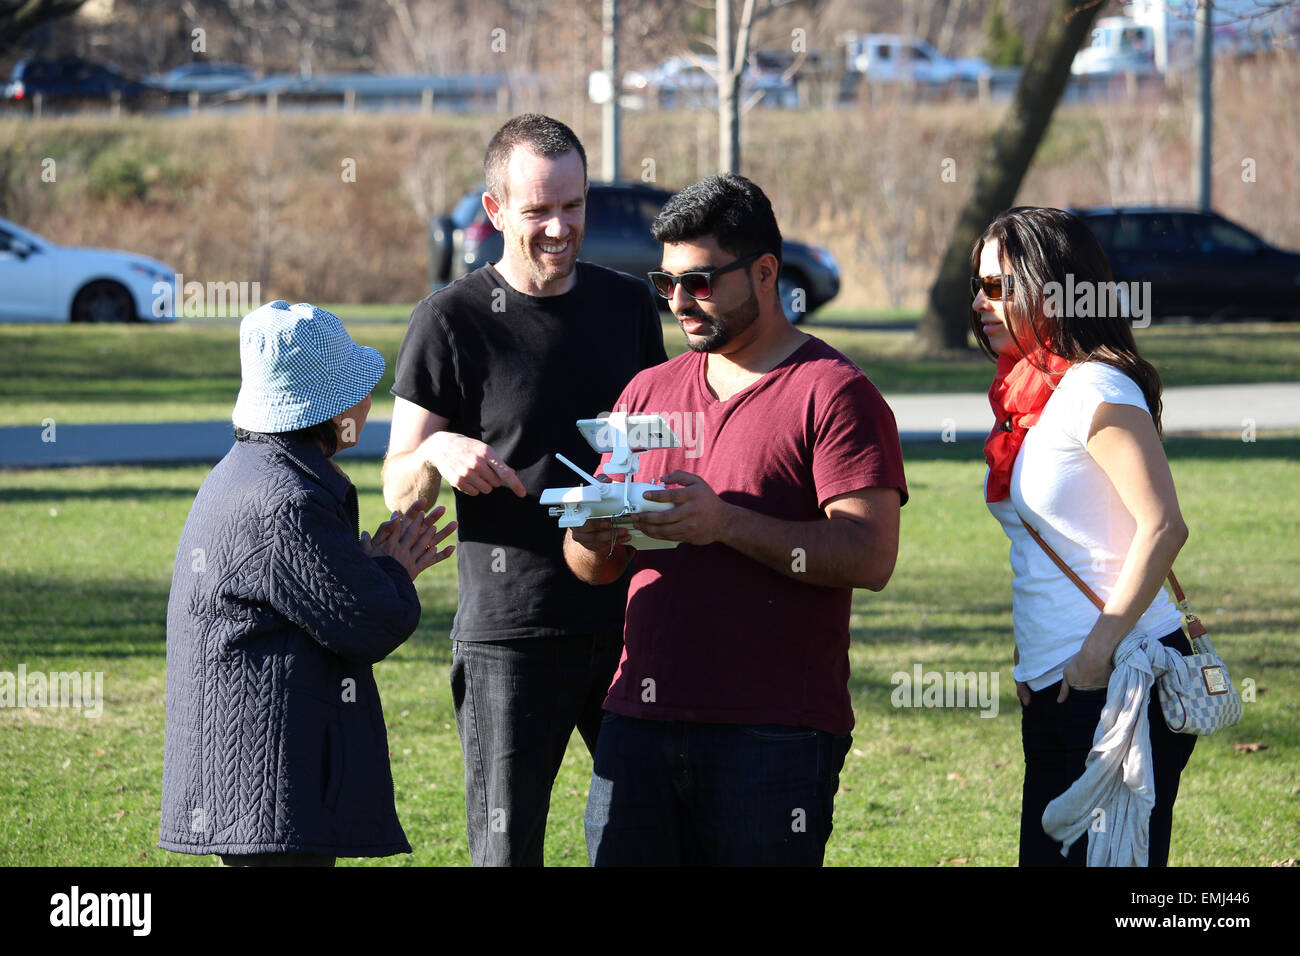 Conversing about a drone. - Stock Image